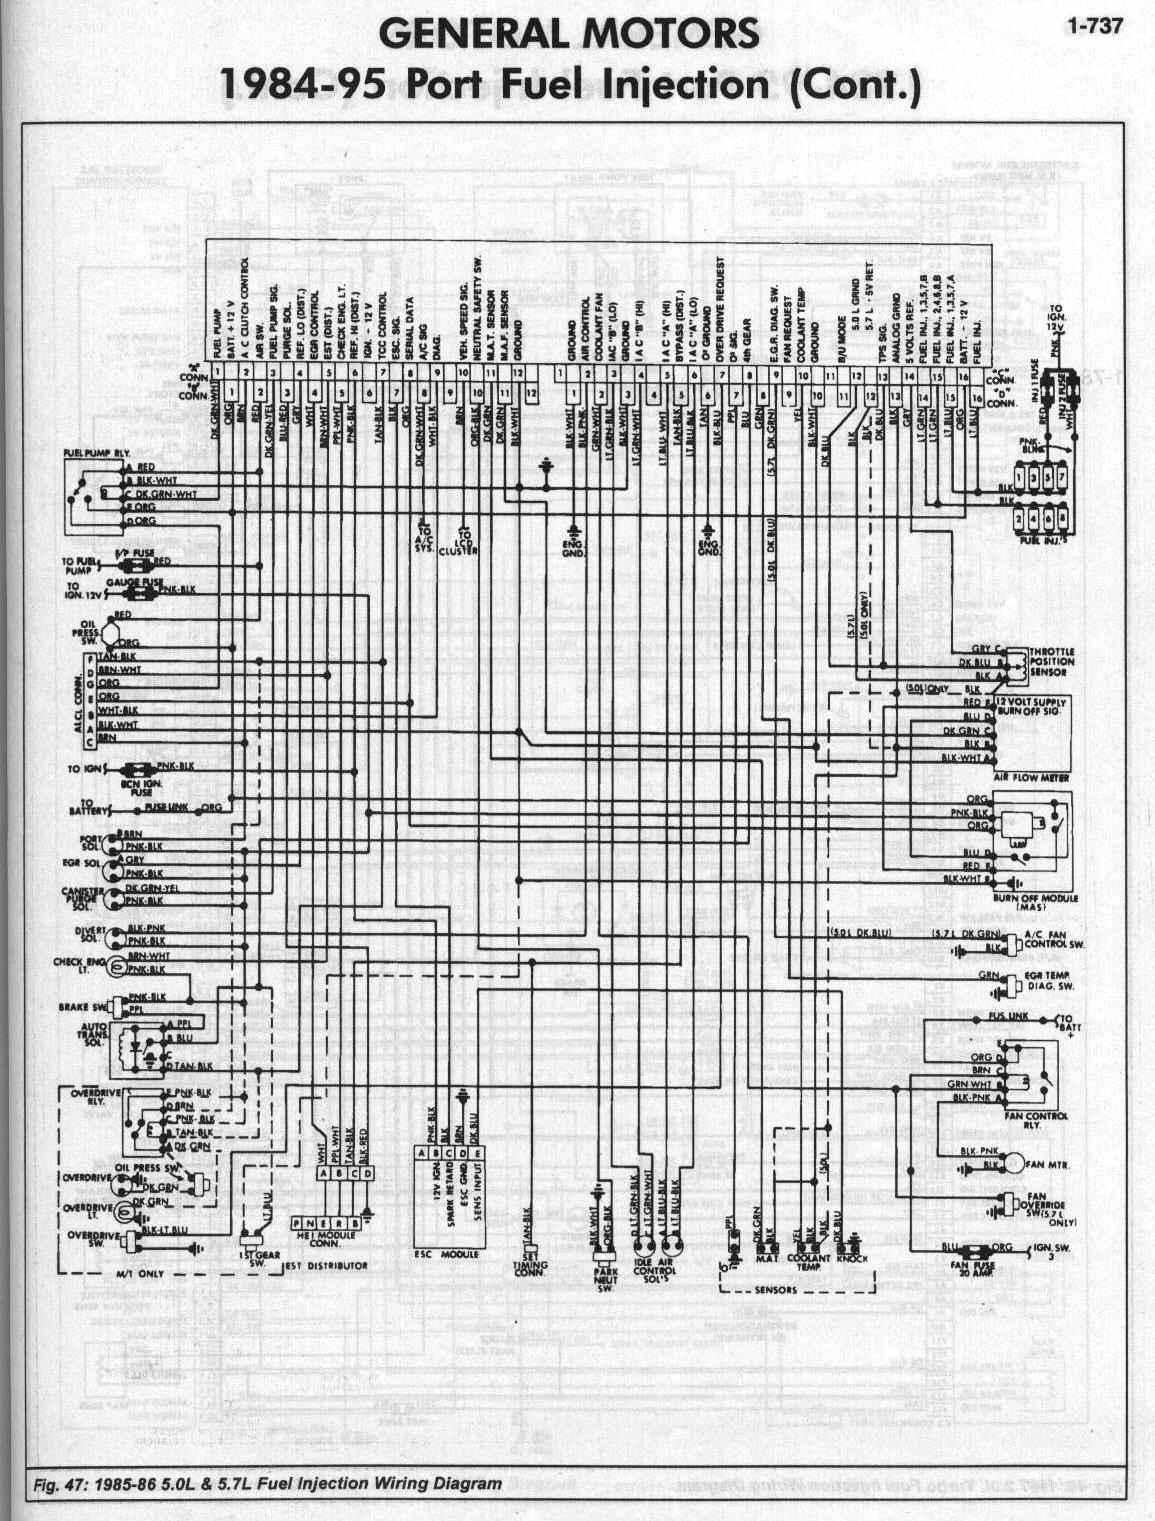 my 85 z28 and eprom project85 ecm wiring (maf mas) diagram copy1 copy2 86